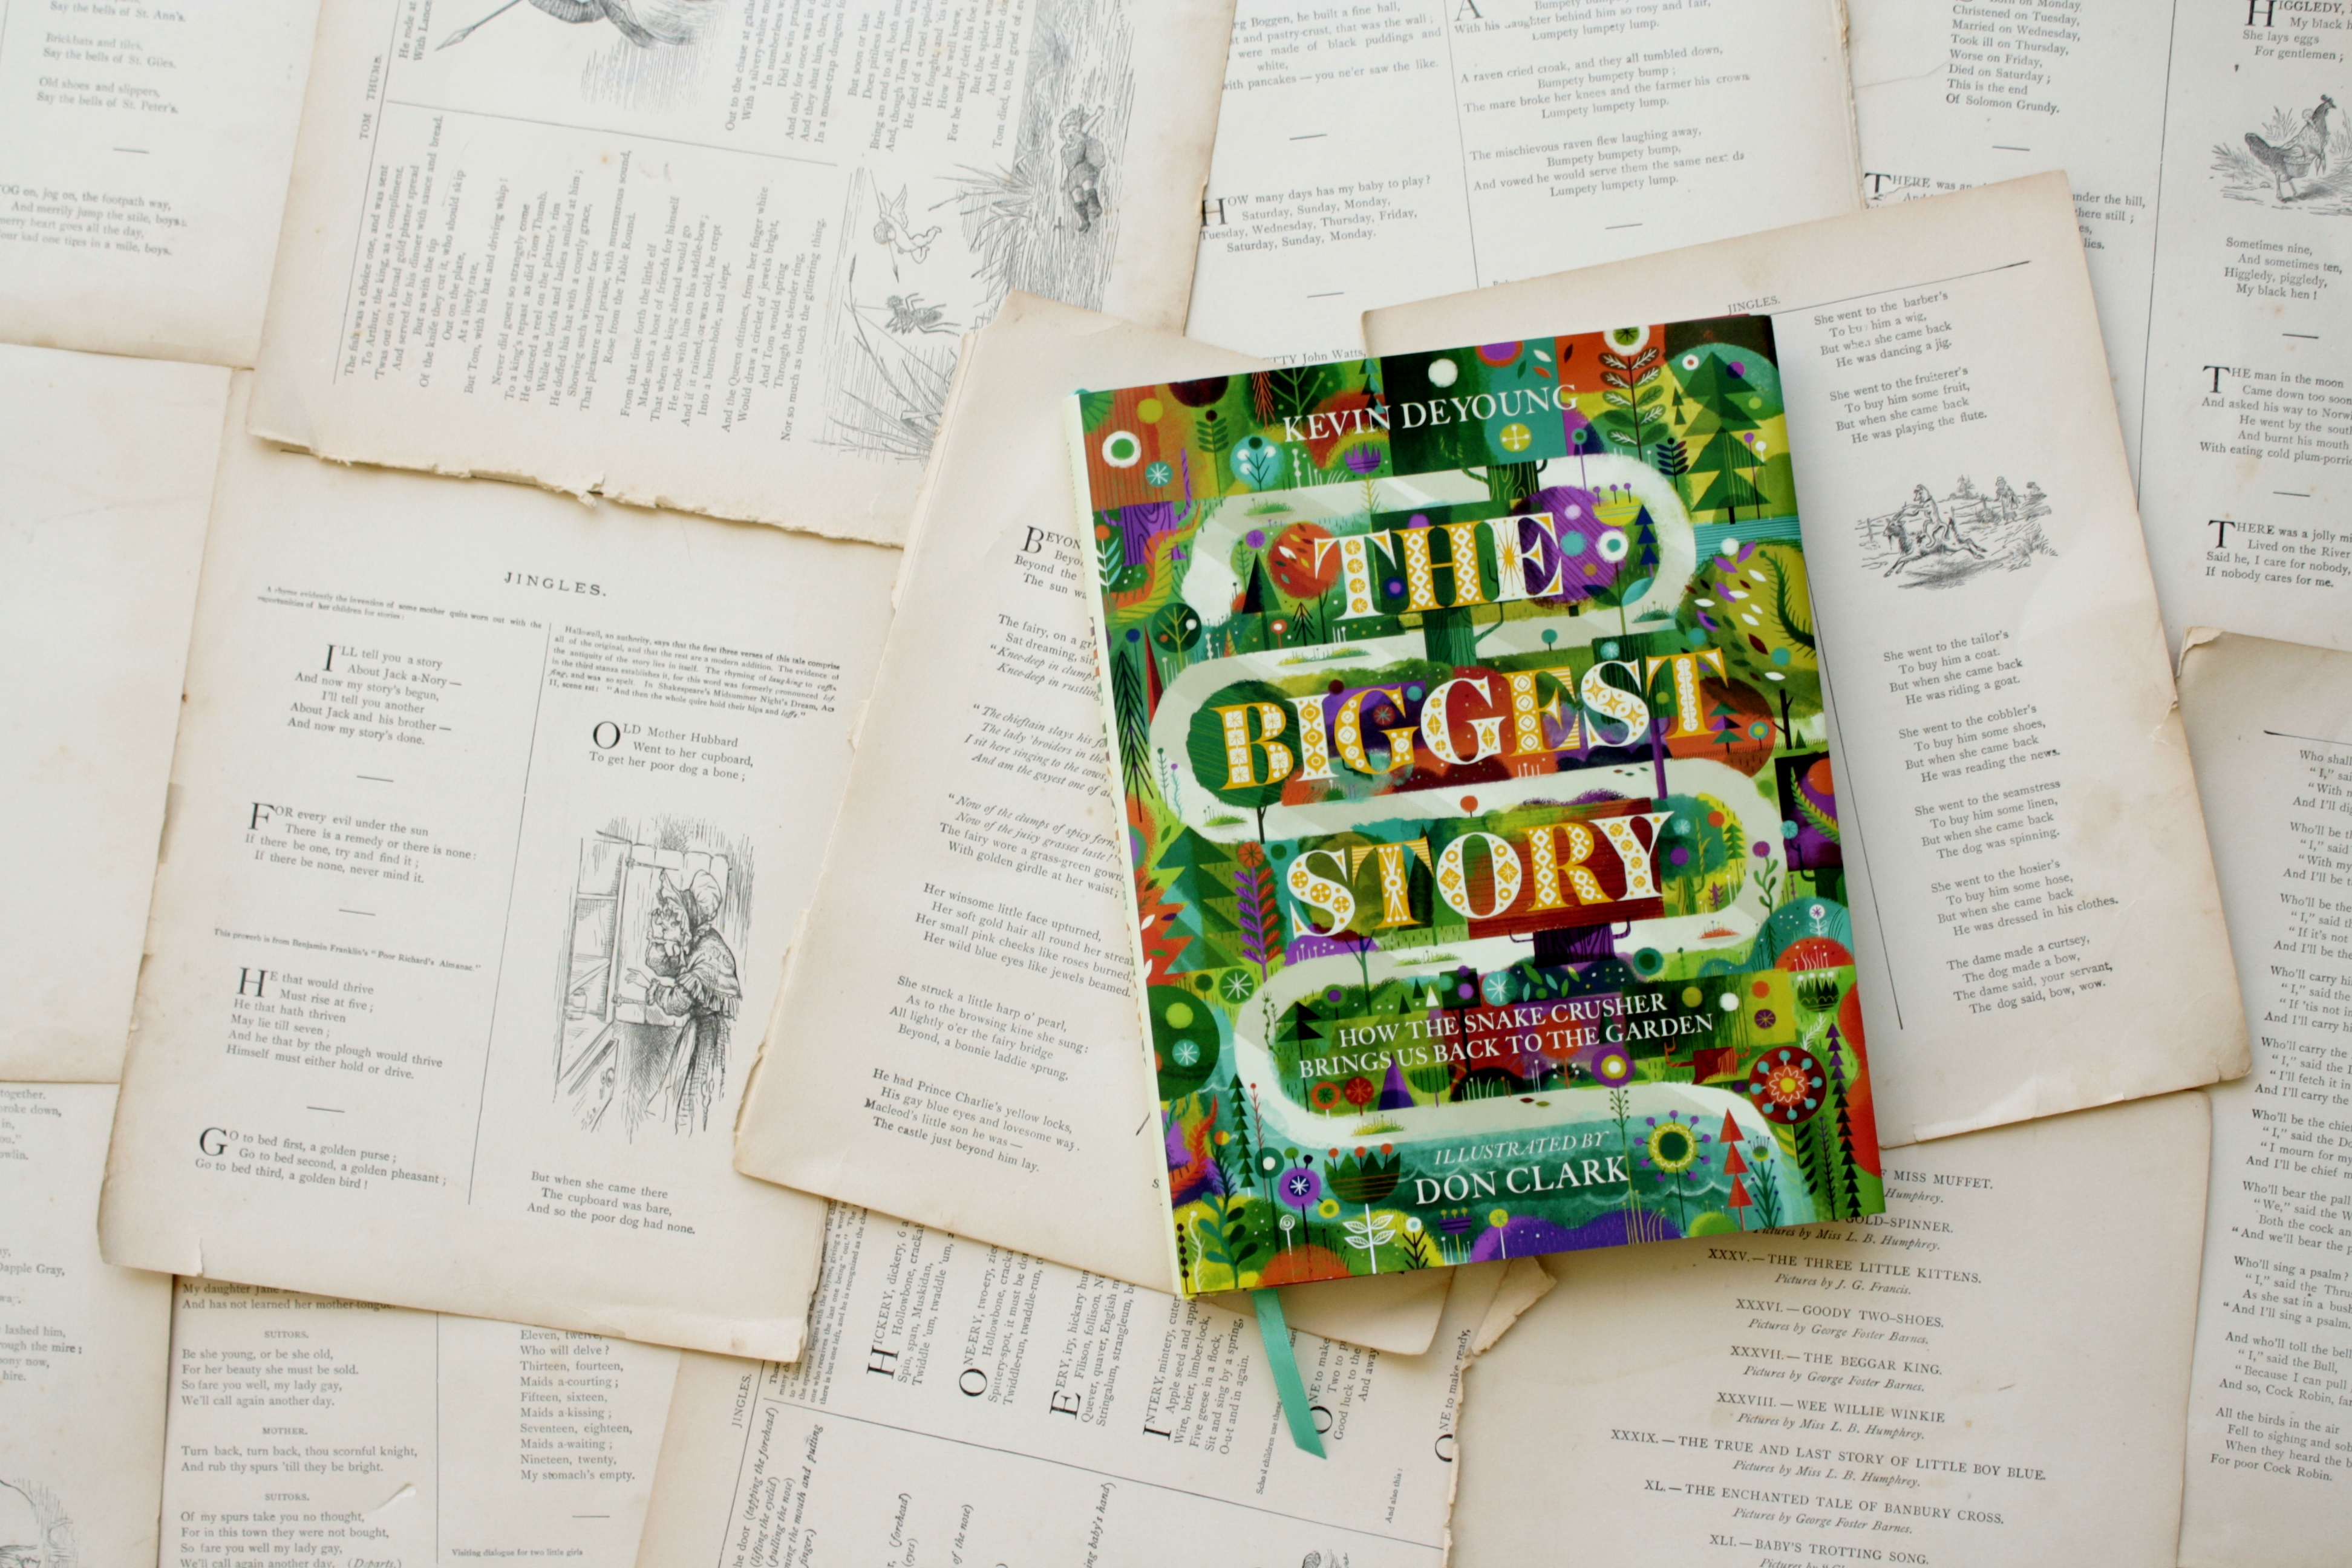 The Biggest Story | Kevin DeYoung